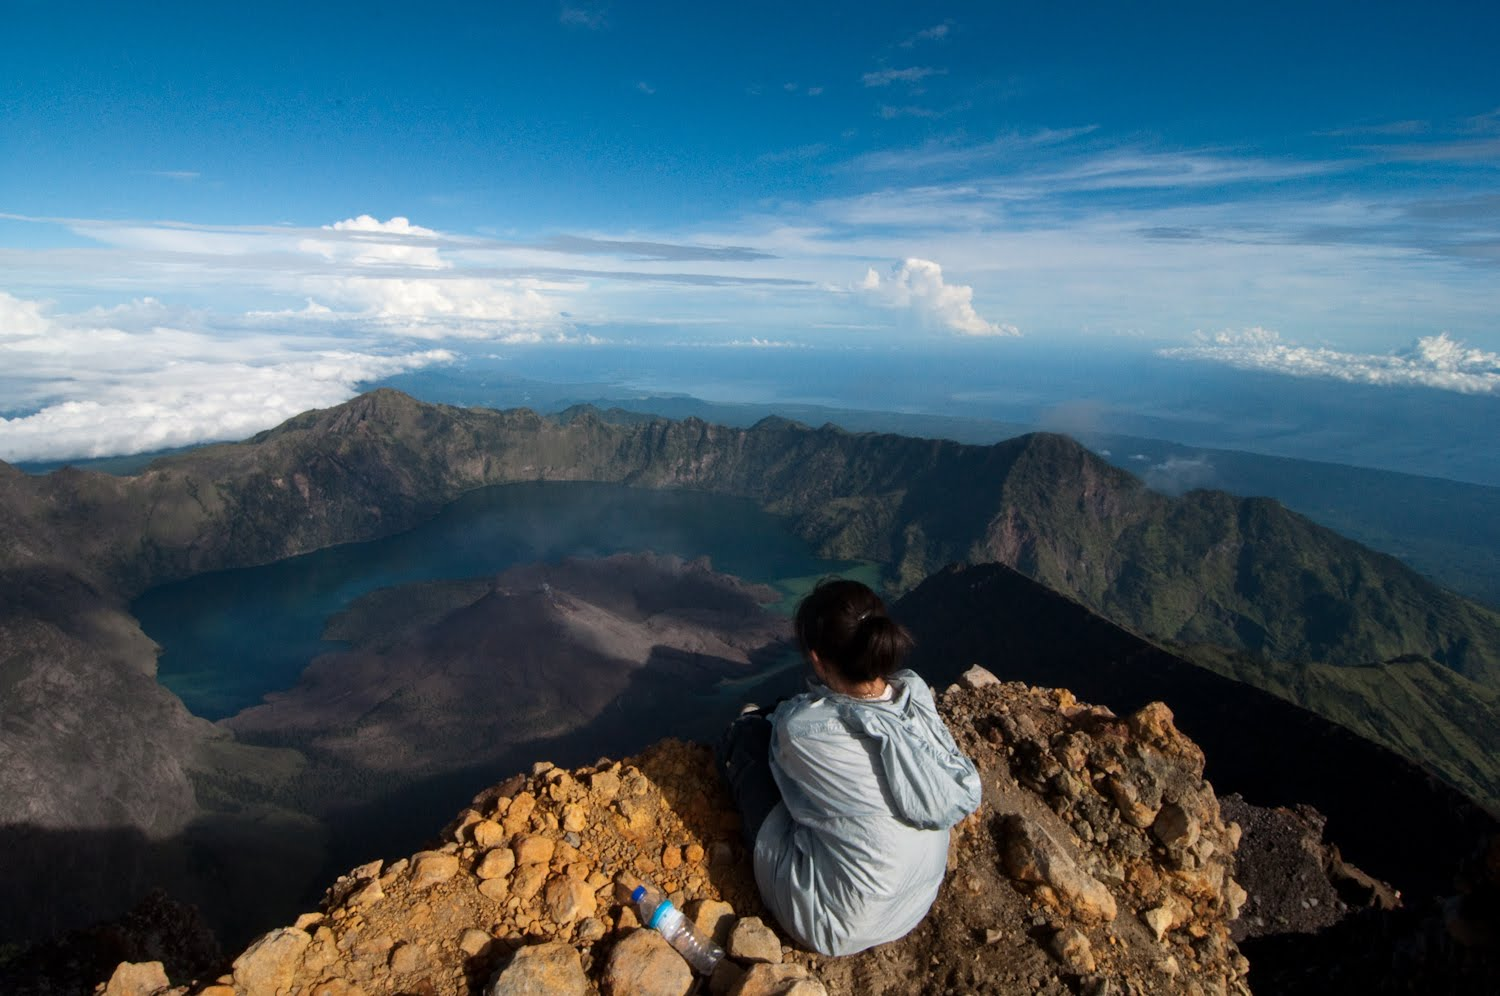 Summit of Mount Rinjani